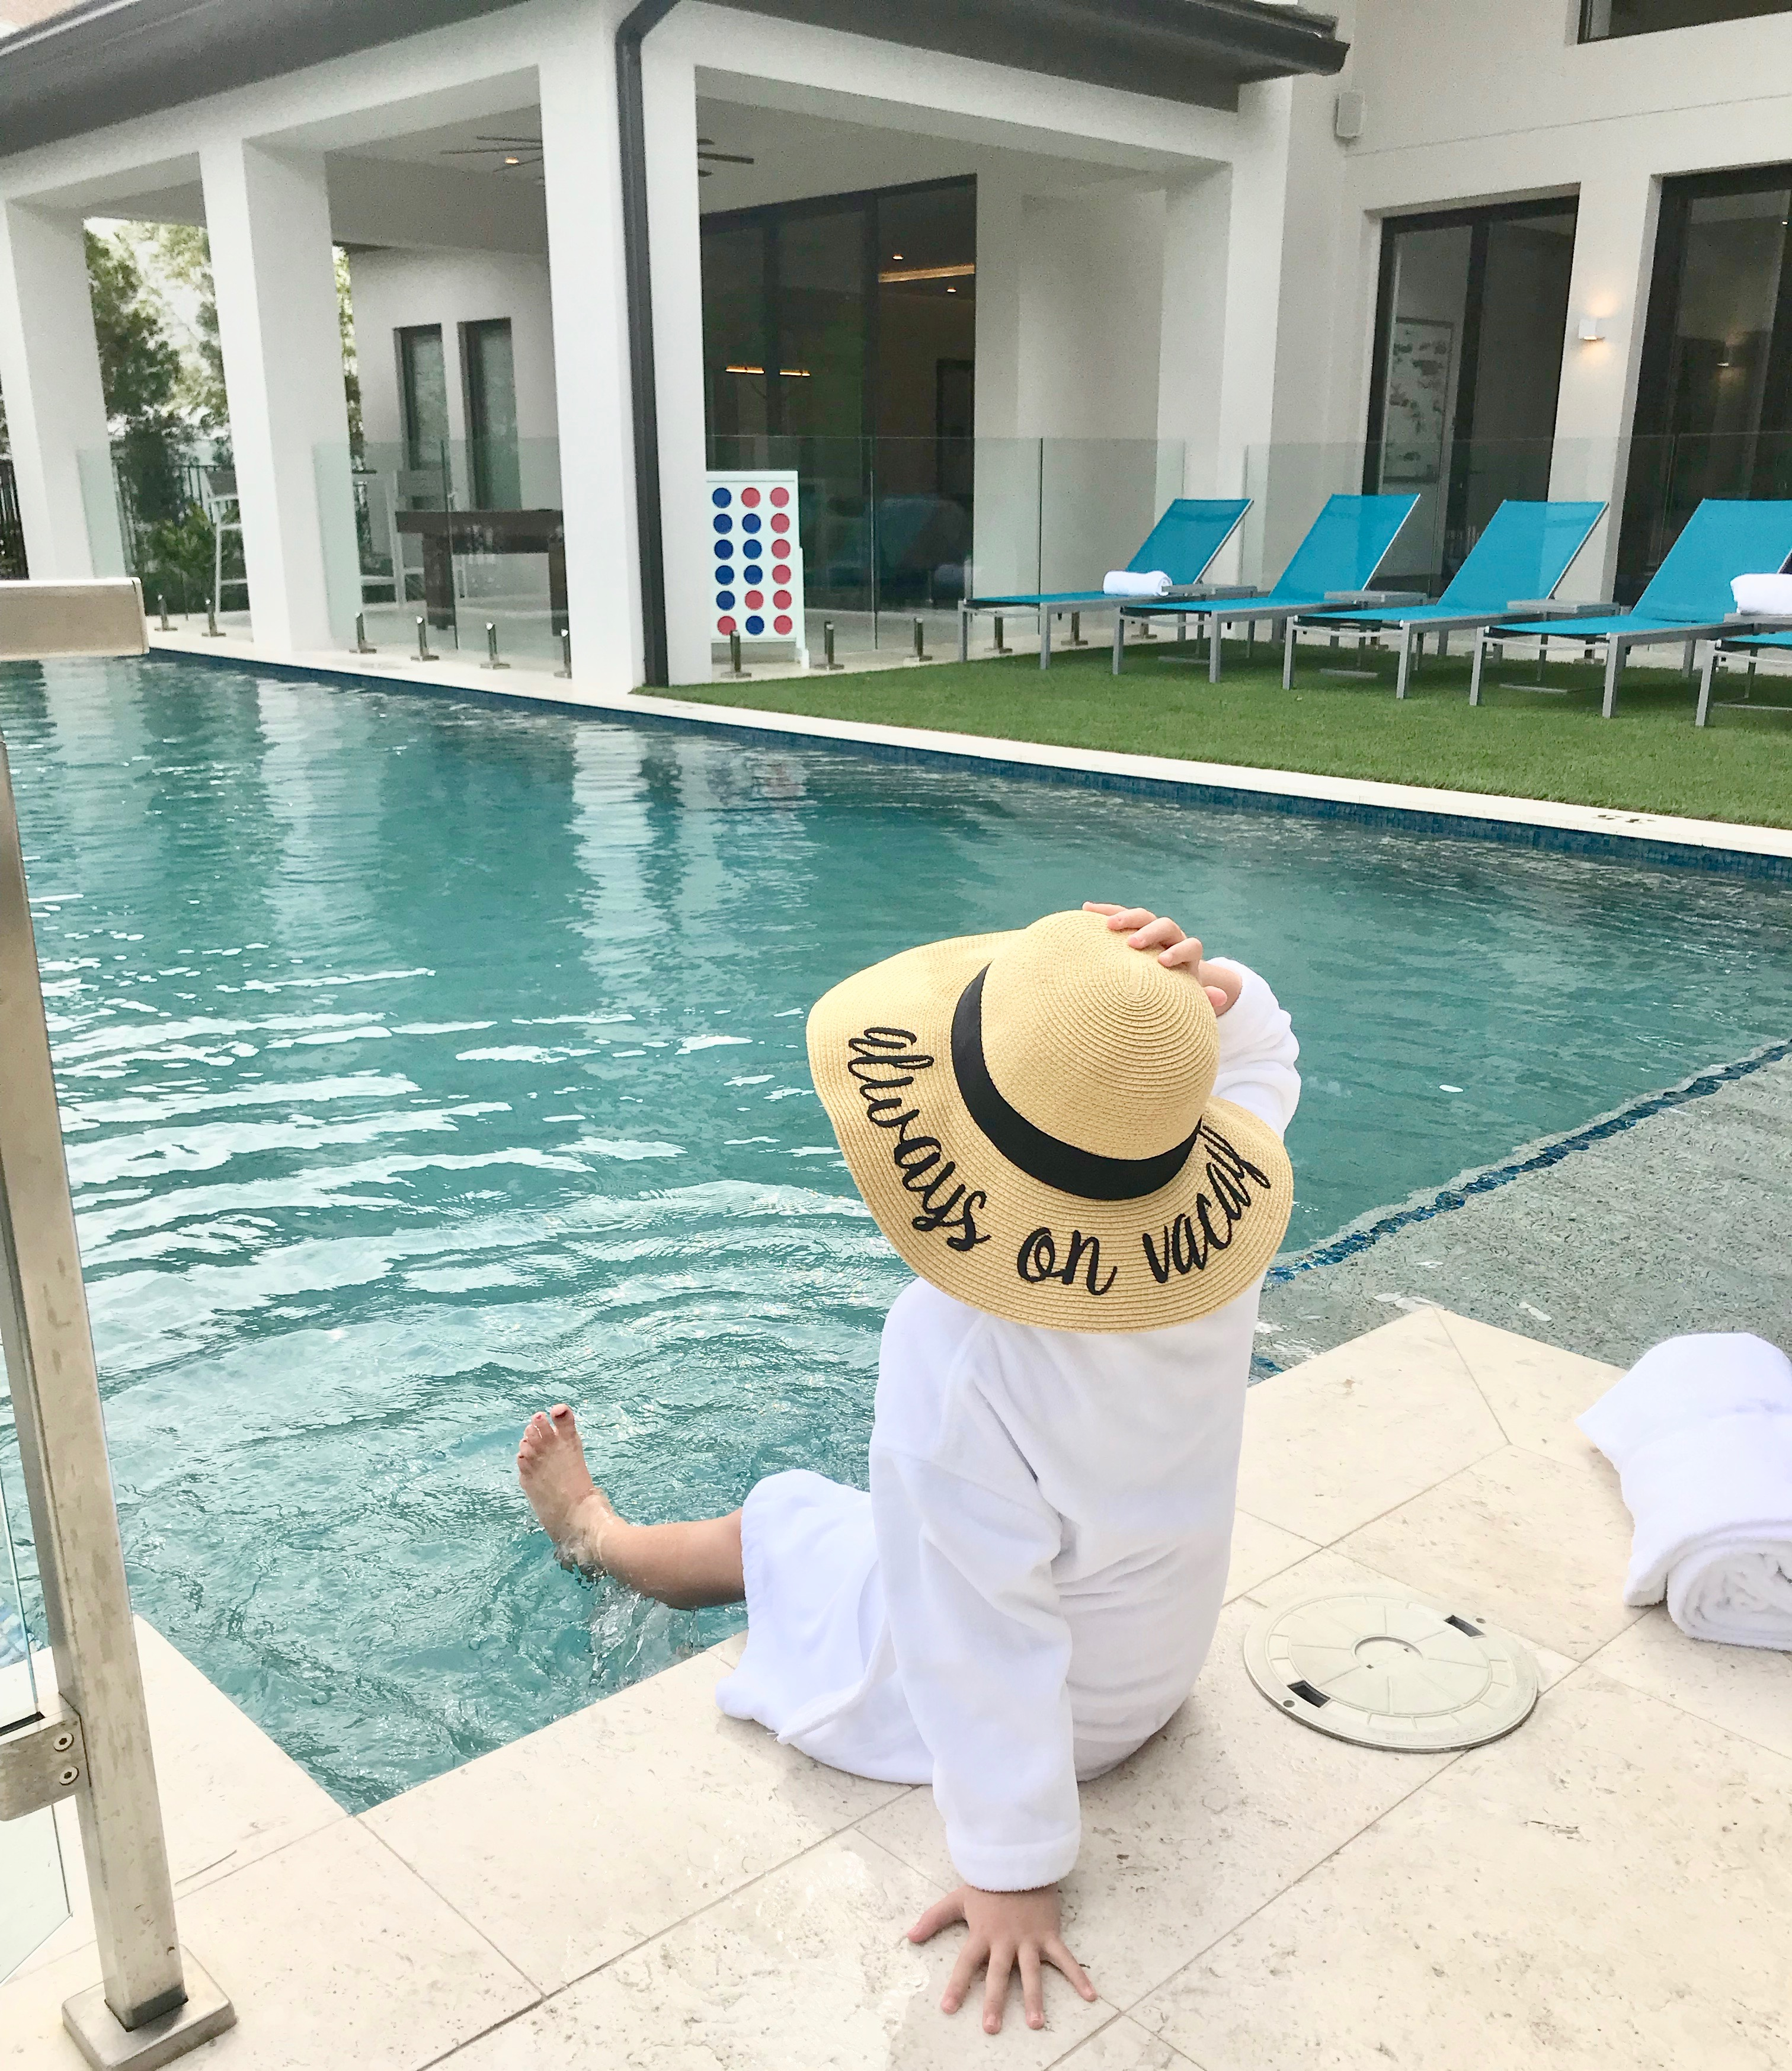 Always on Vacay at Isolé Villas poolside